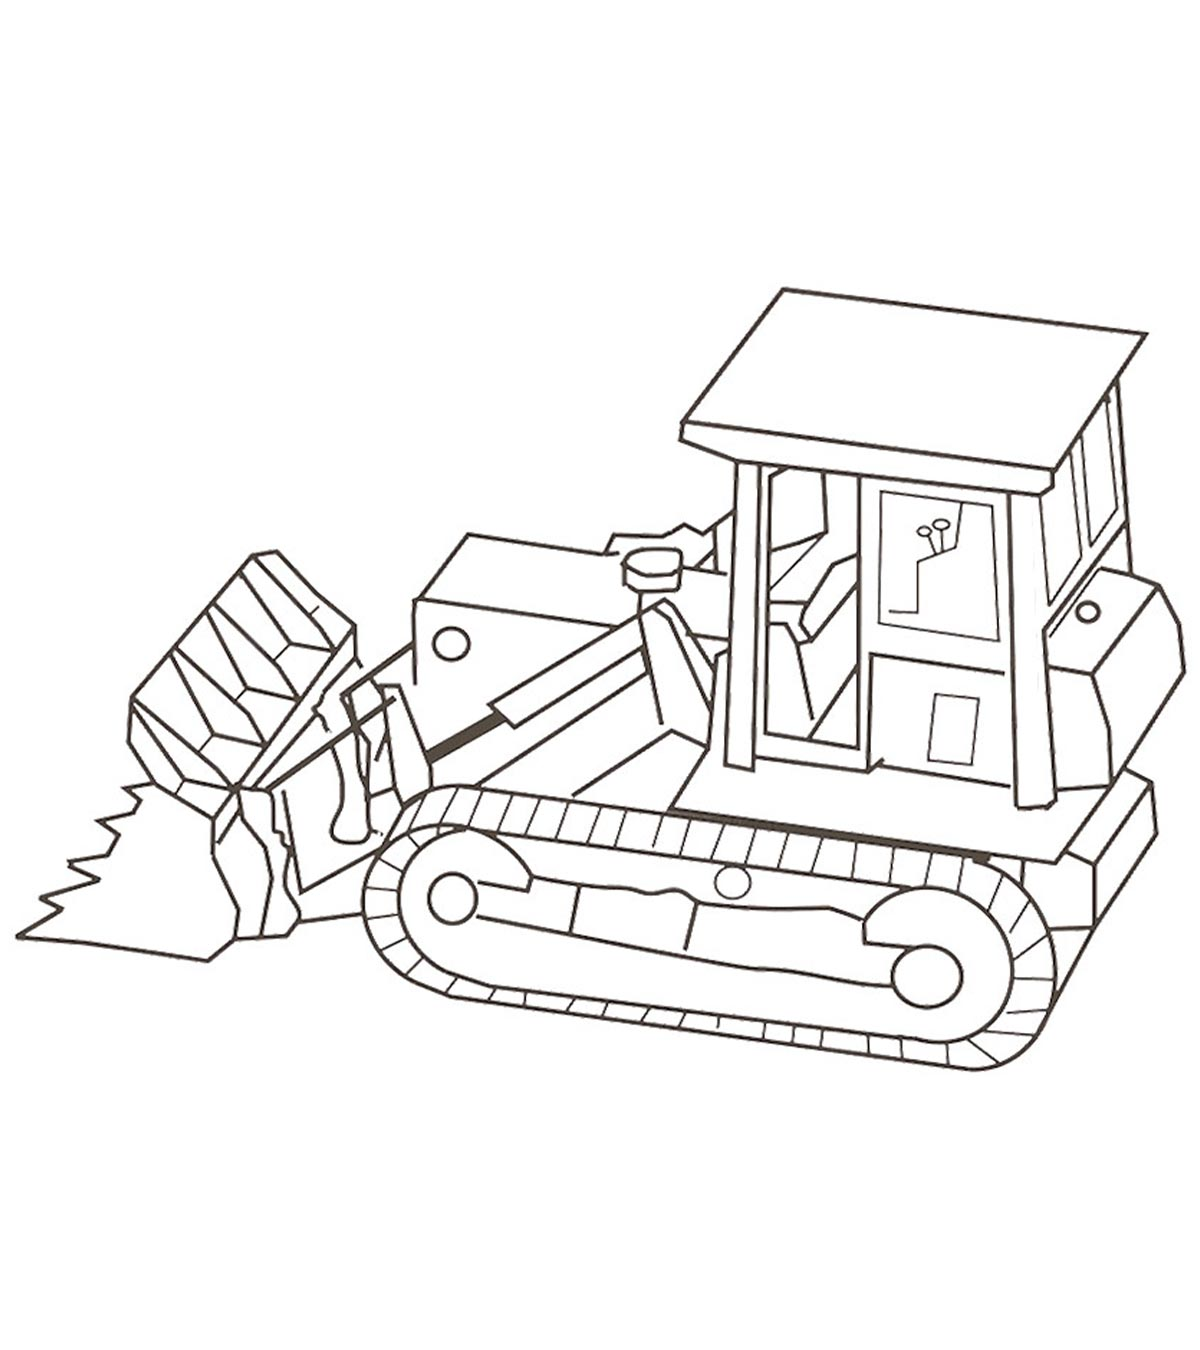 Cement Mixer coloring page for kids, transportation coloring pages ... | 1350x1200